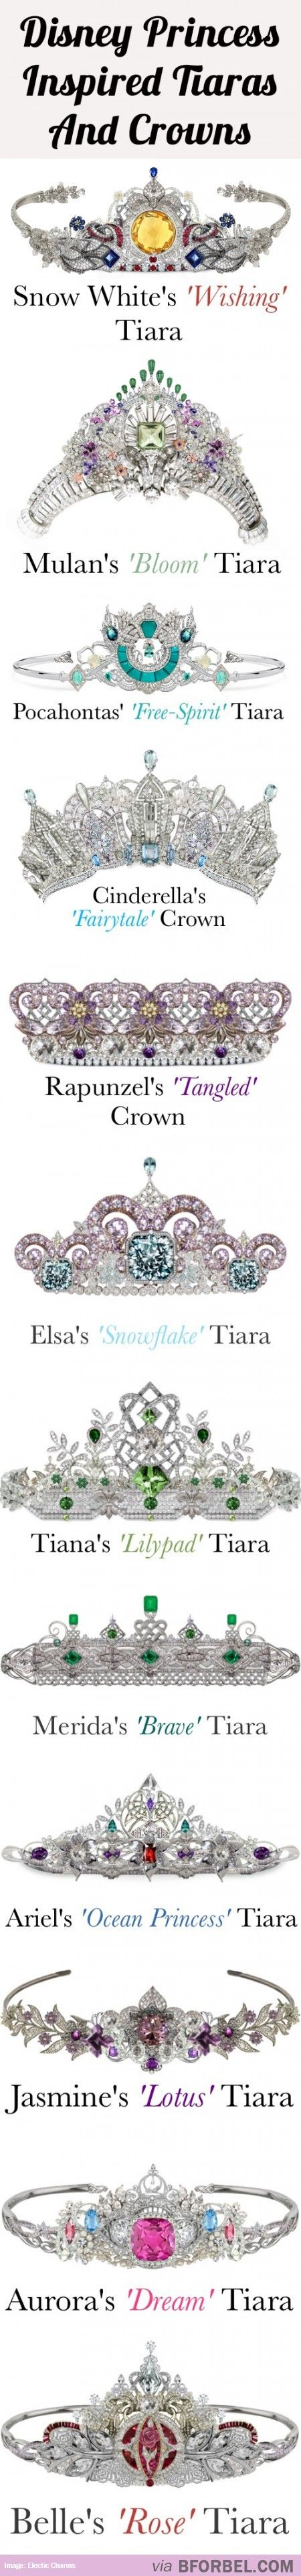 12 Disney Princess Tiaras And Crowns...